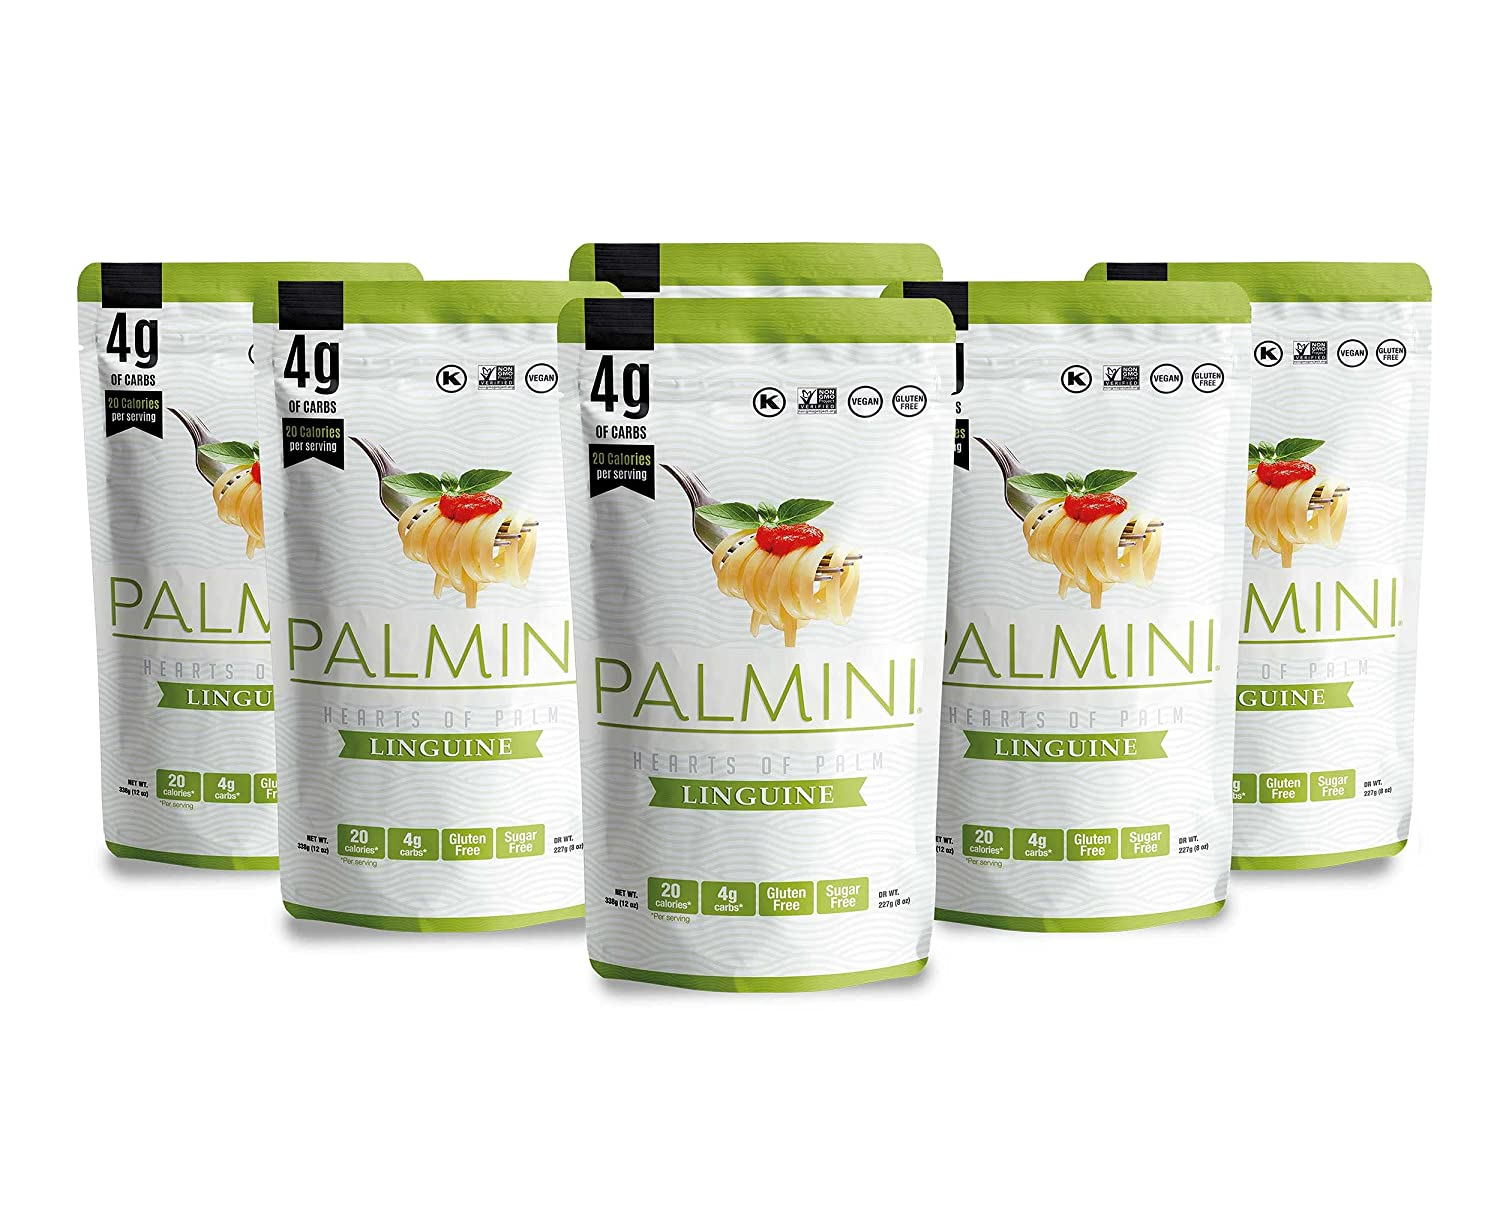 Palmini Max 77% OFF Low Carb Linguine 4g Max 79% OFF of Tank As On Carbs Shark Seen